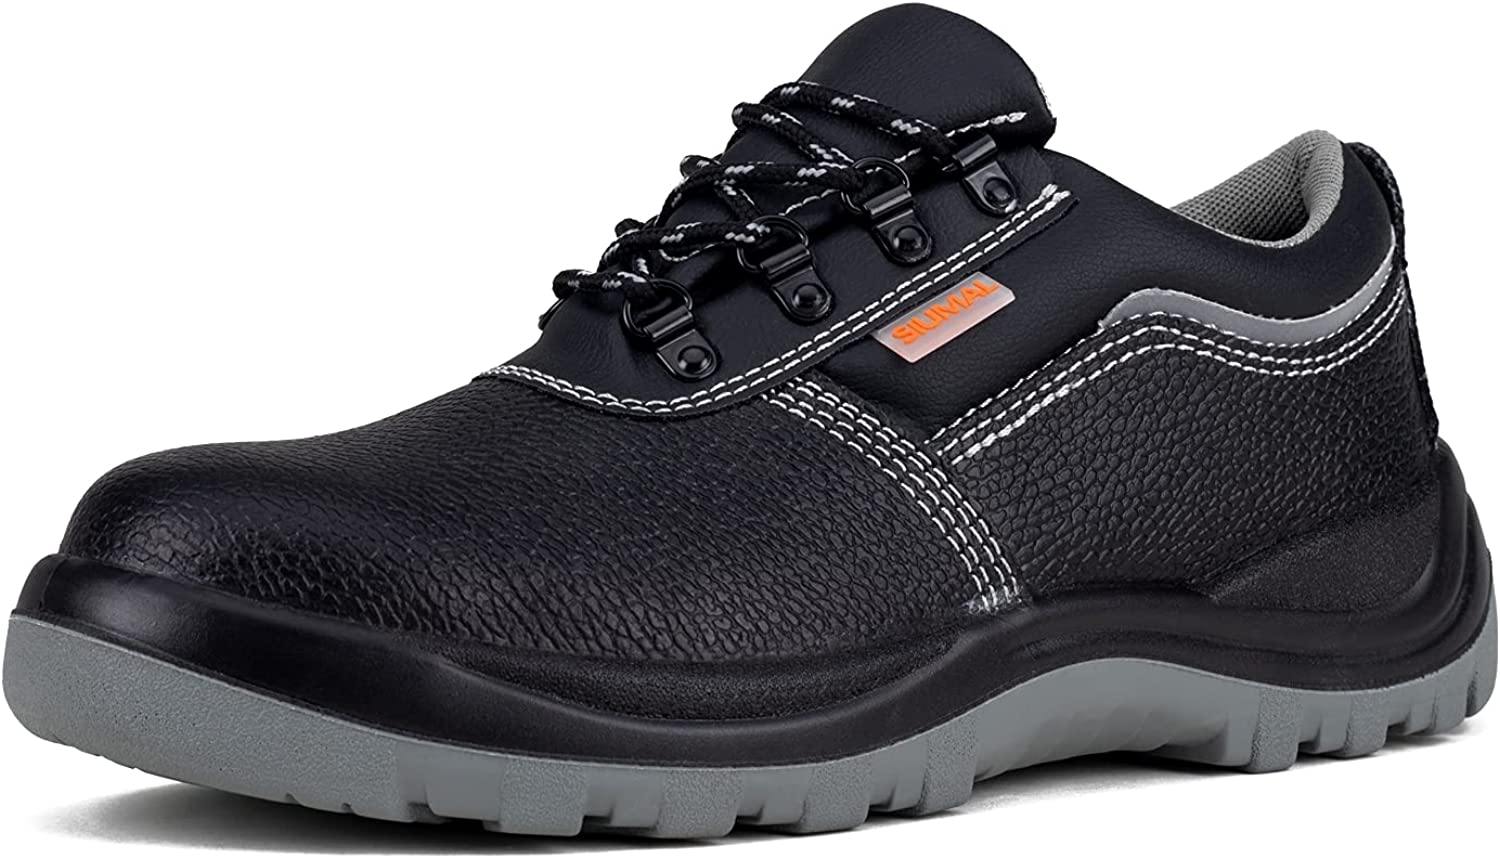 Safety Shoes for Men Composite Toe Breathable Stab-Resistant Safety Work Shoes Non-Slip